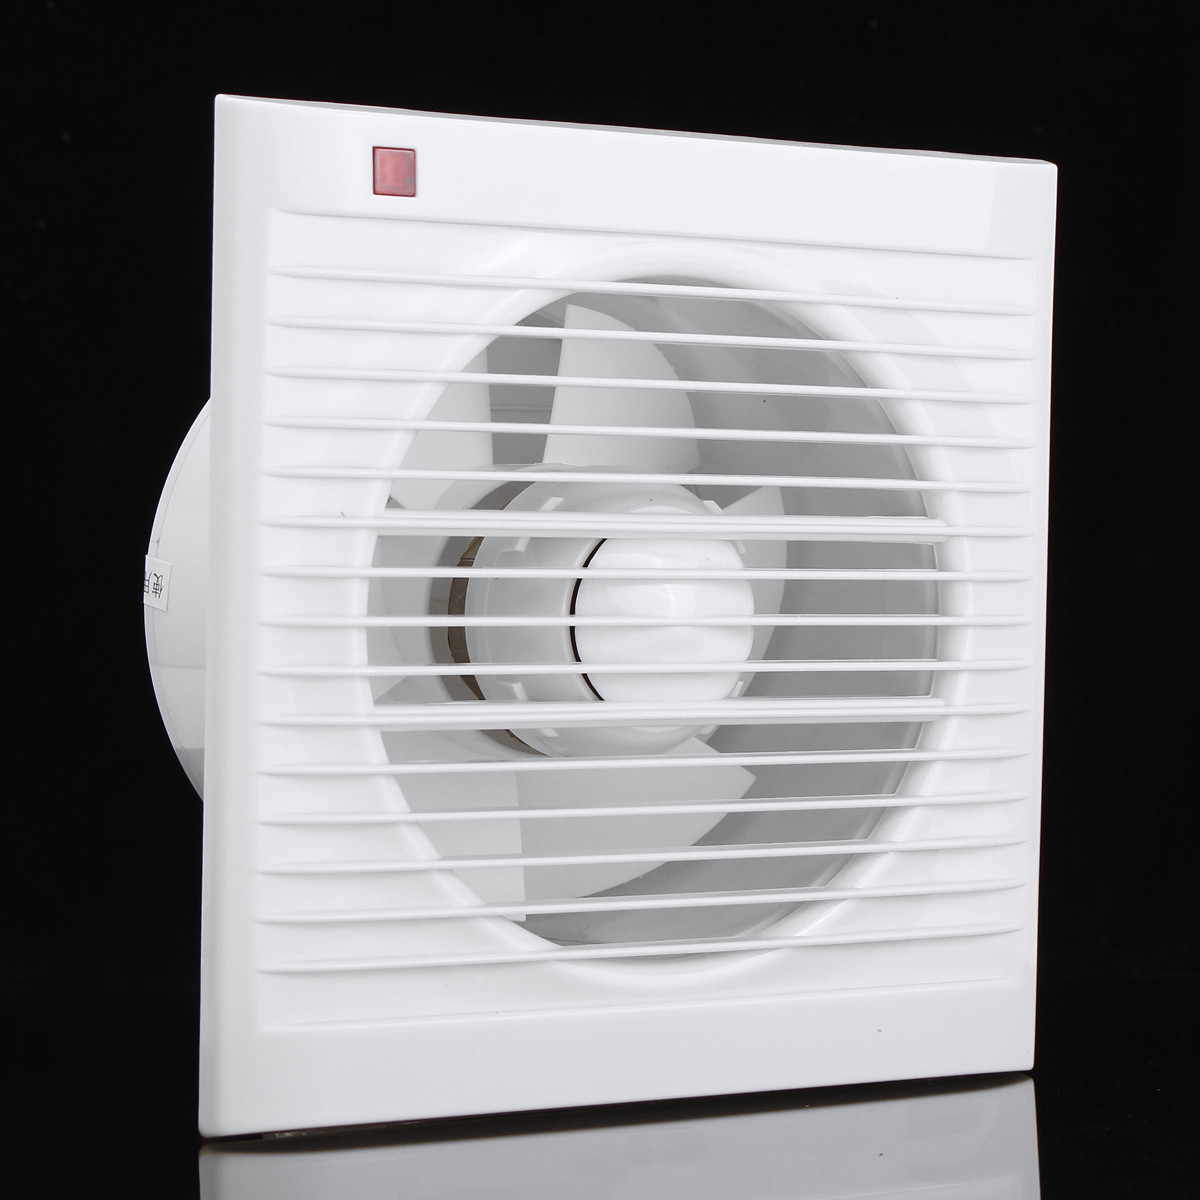 kitchen window exhaust fan blanco sink 4 6 8 waterproof mute bathroom extractor